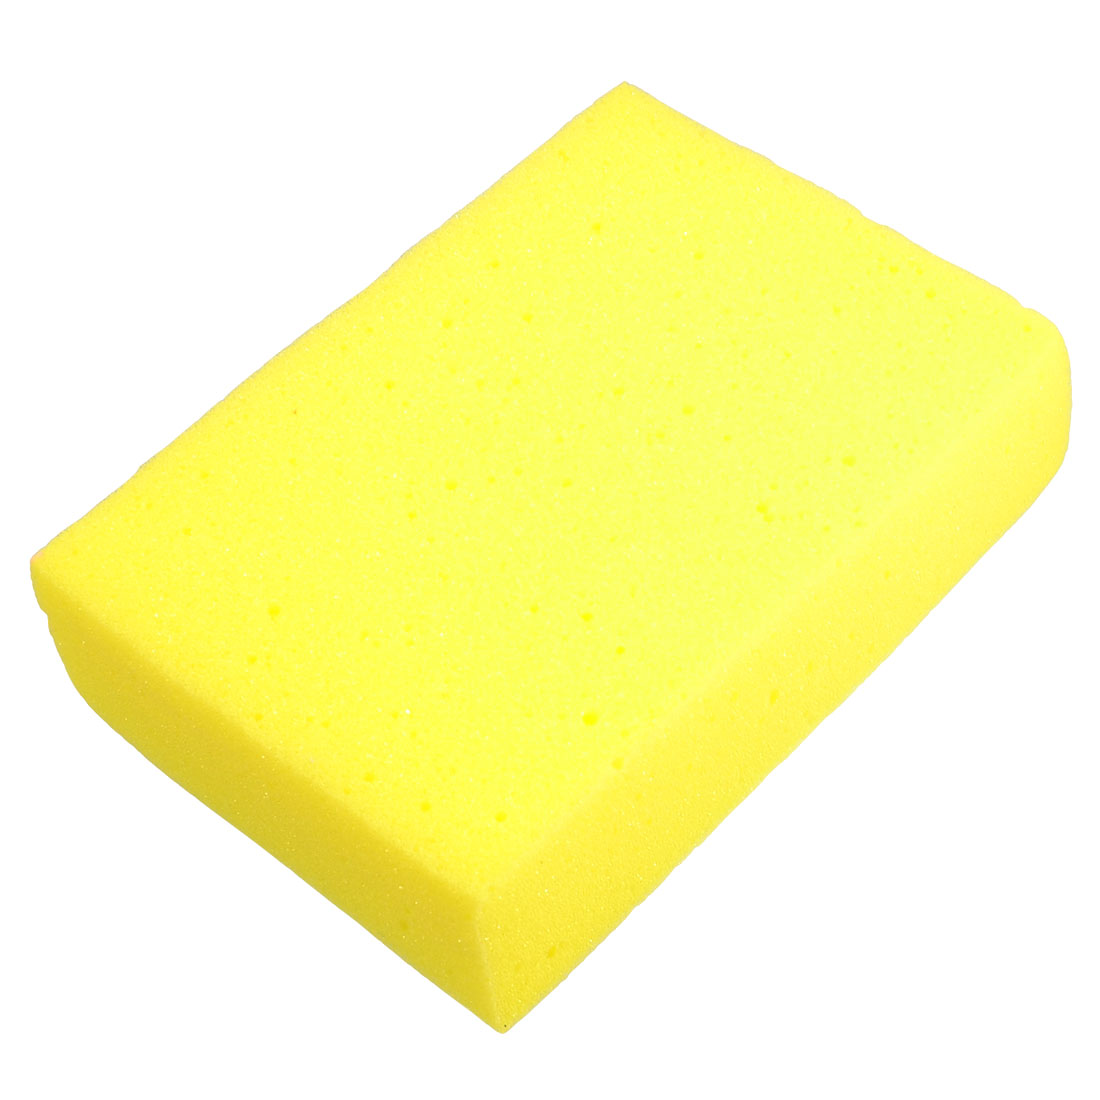 Rectangular 16.5x11.5x4.5cm Yellow Cleaning Sponge for Car Auto